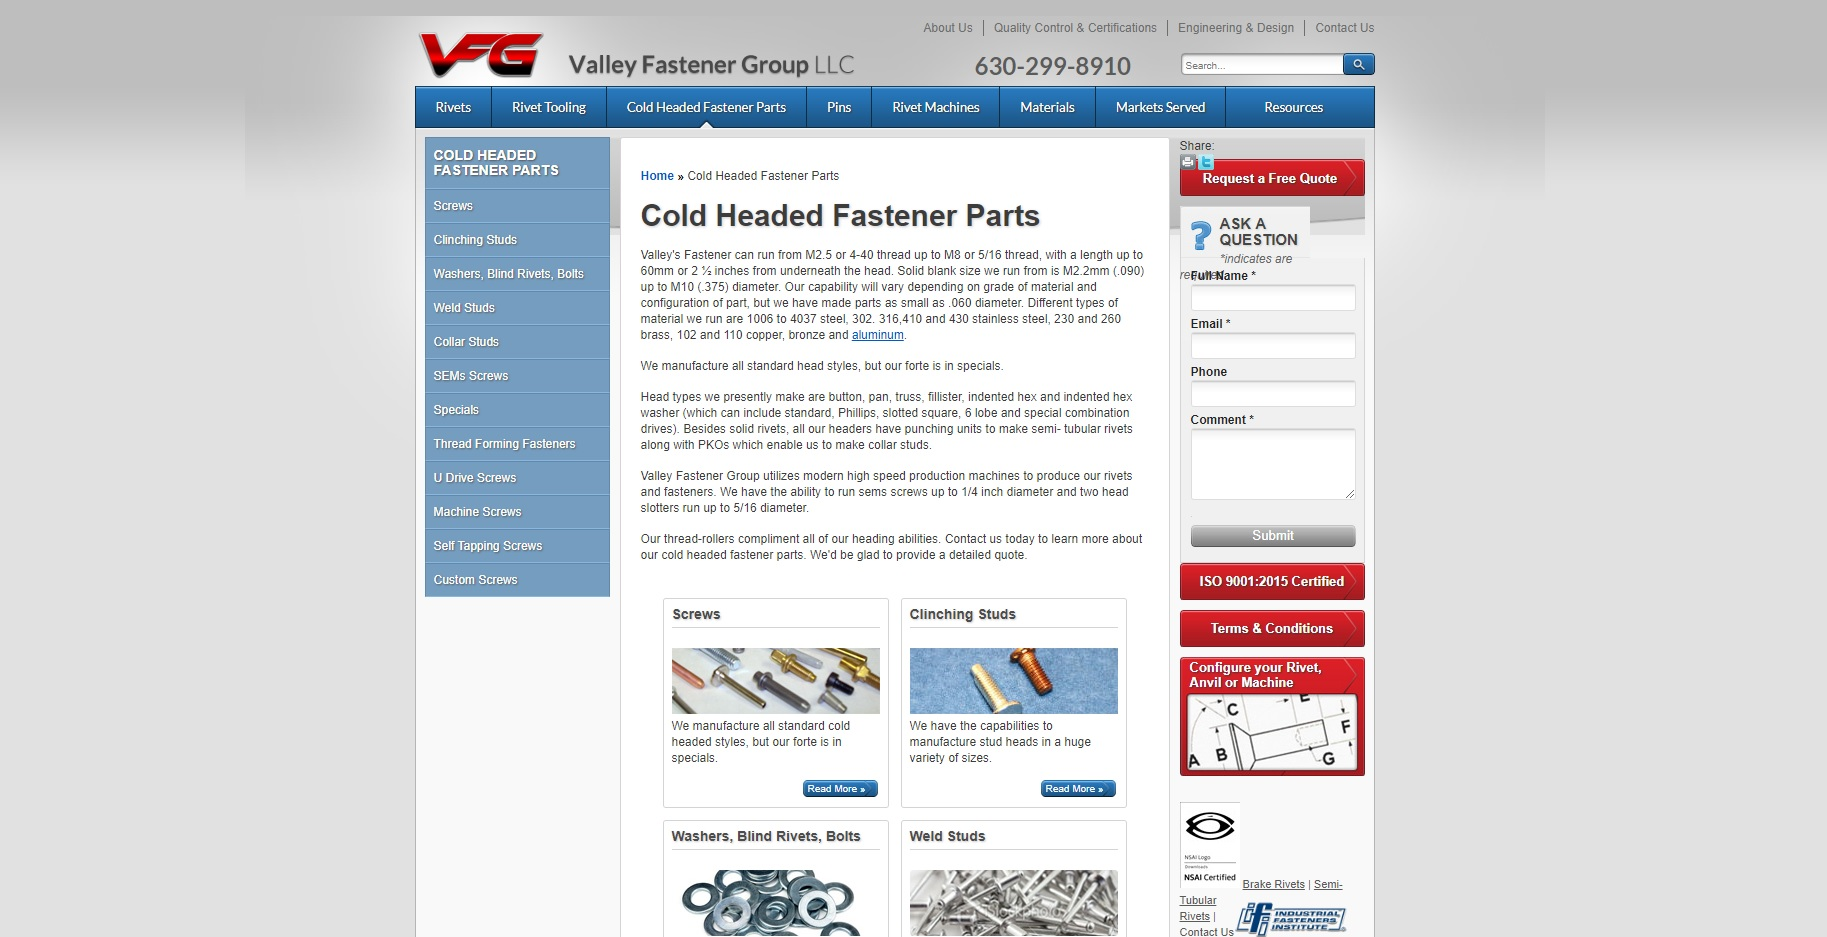 Valley Fastener Group, LLC